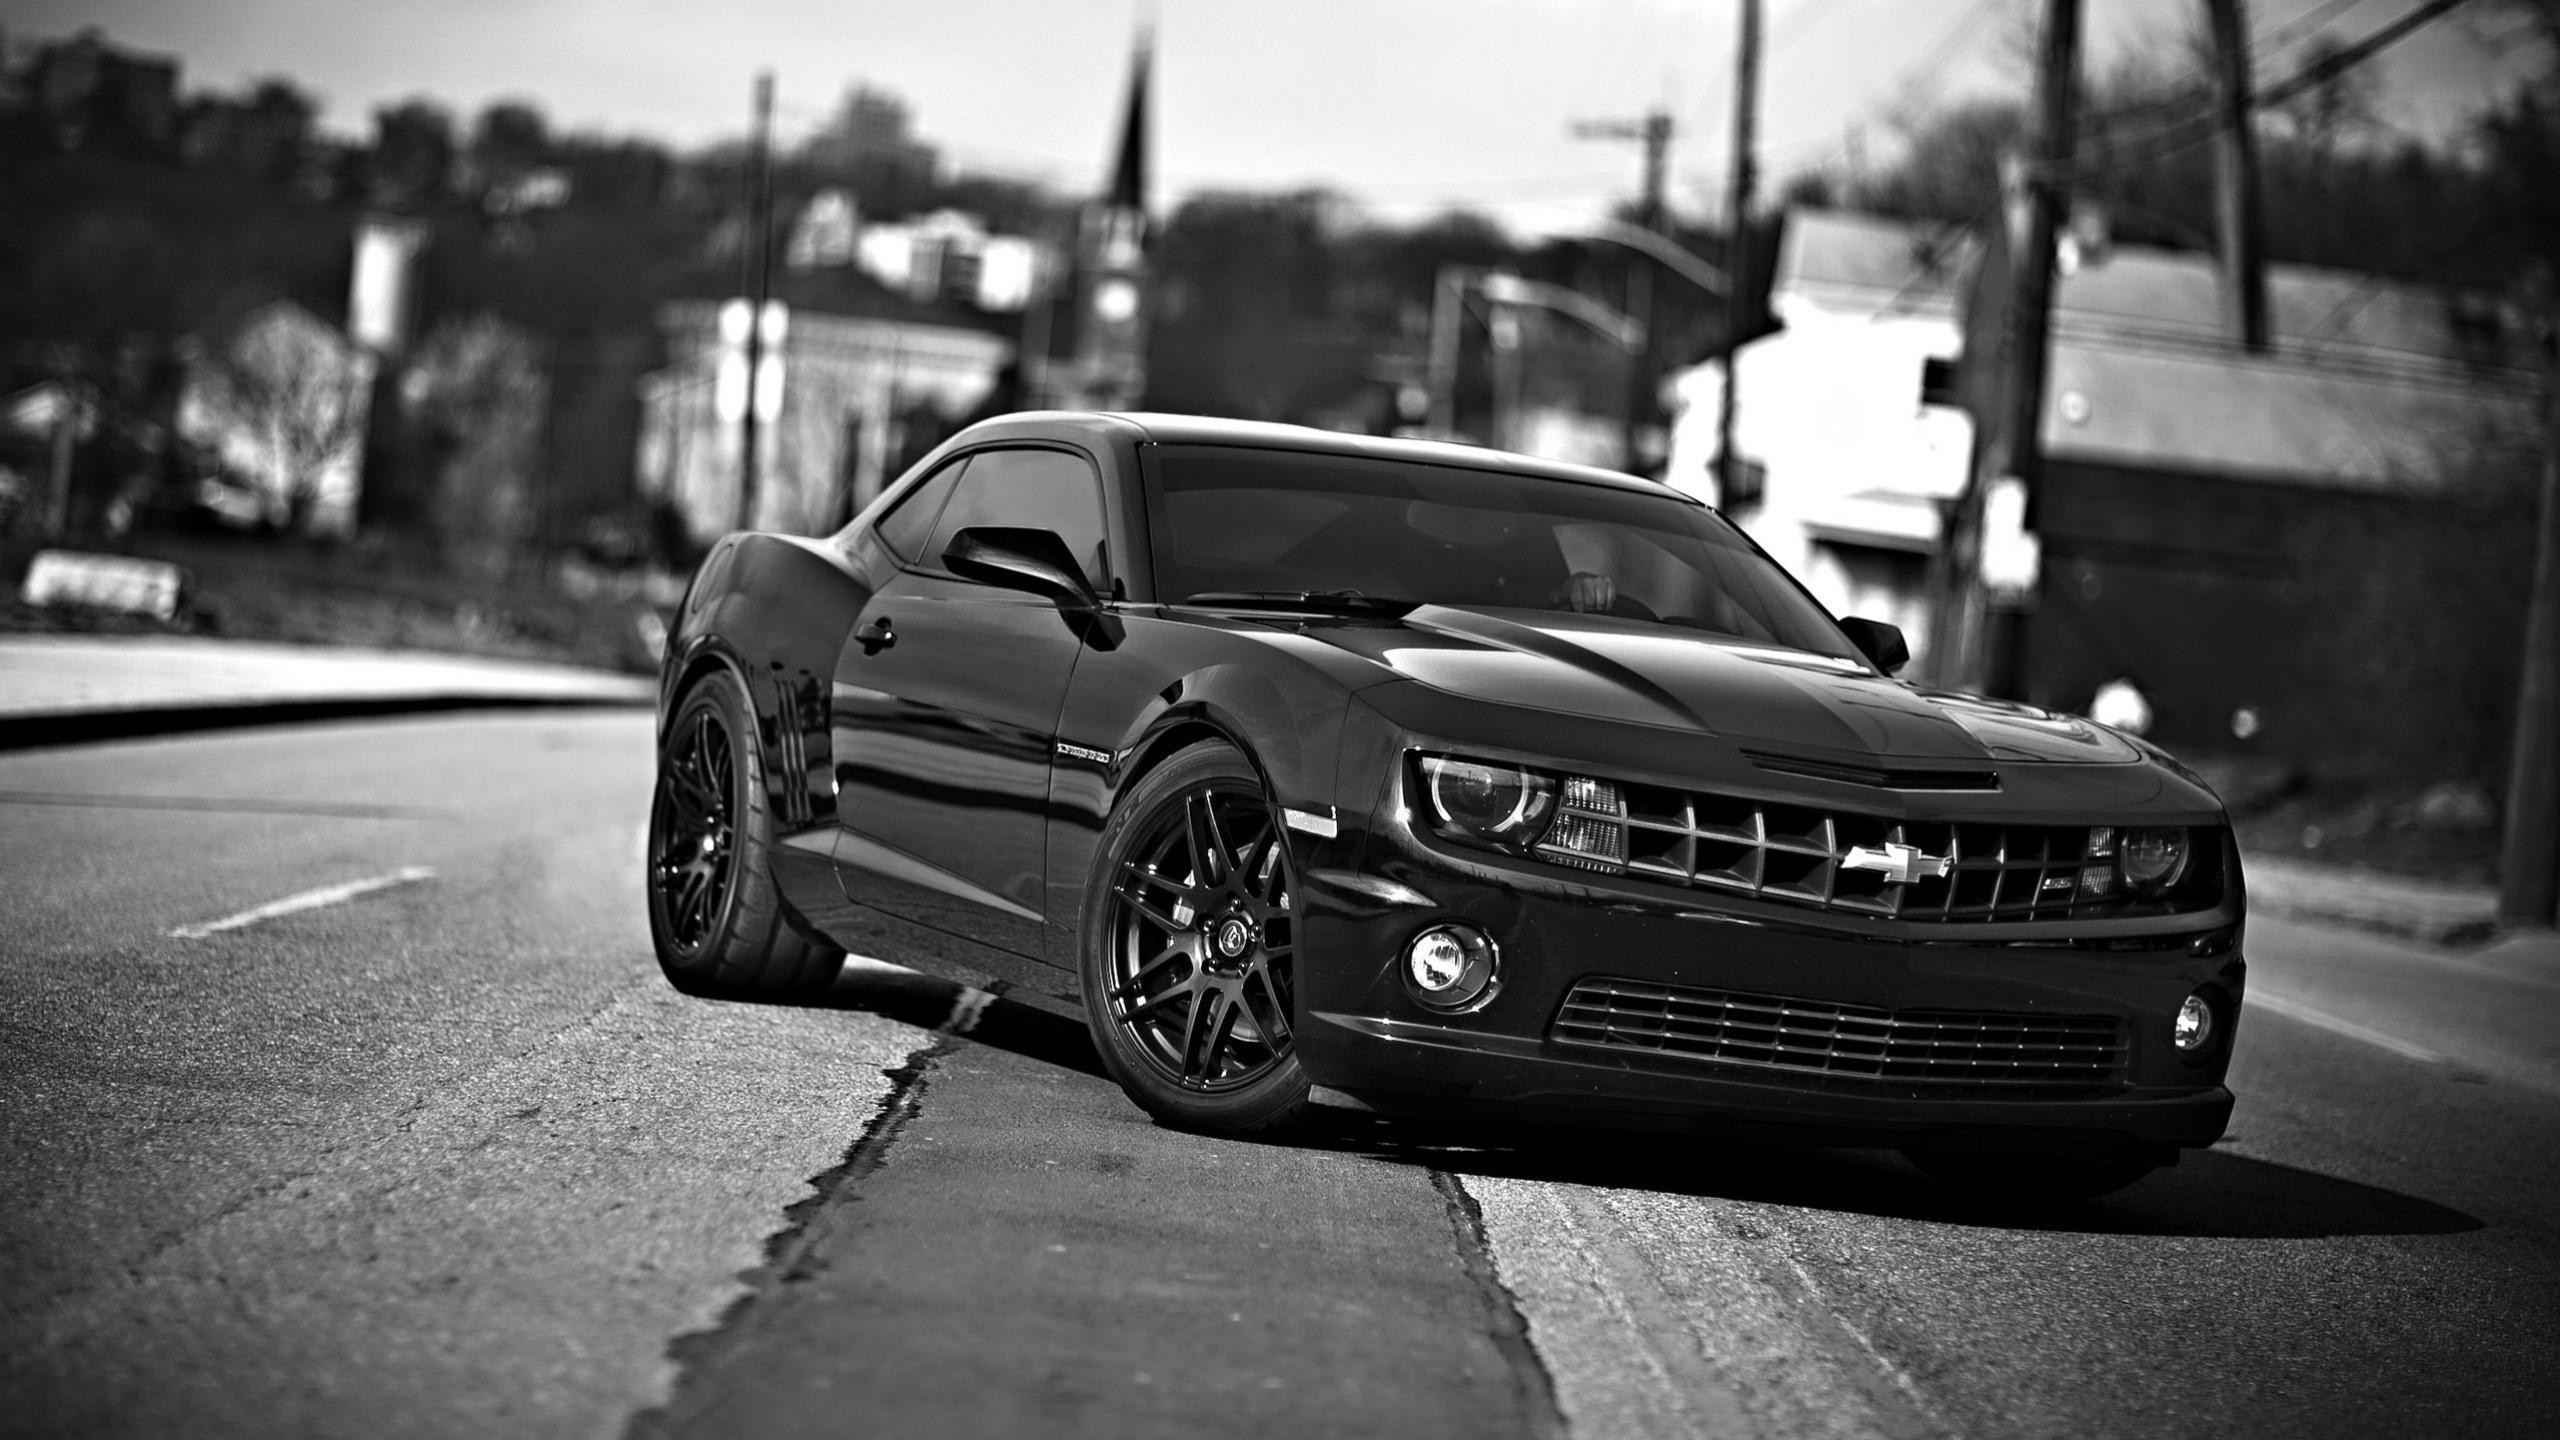 chevrolet camaro chevrolet cars front view black white